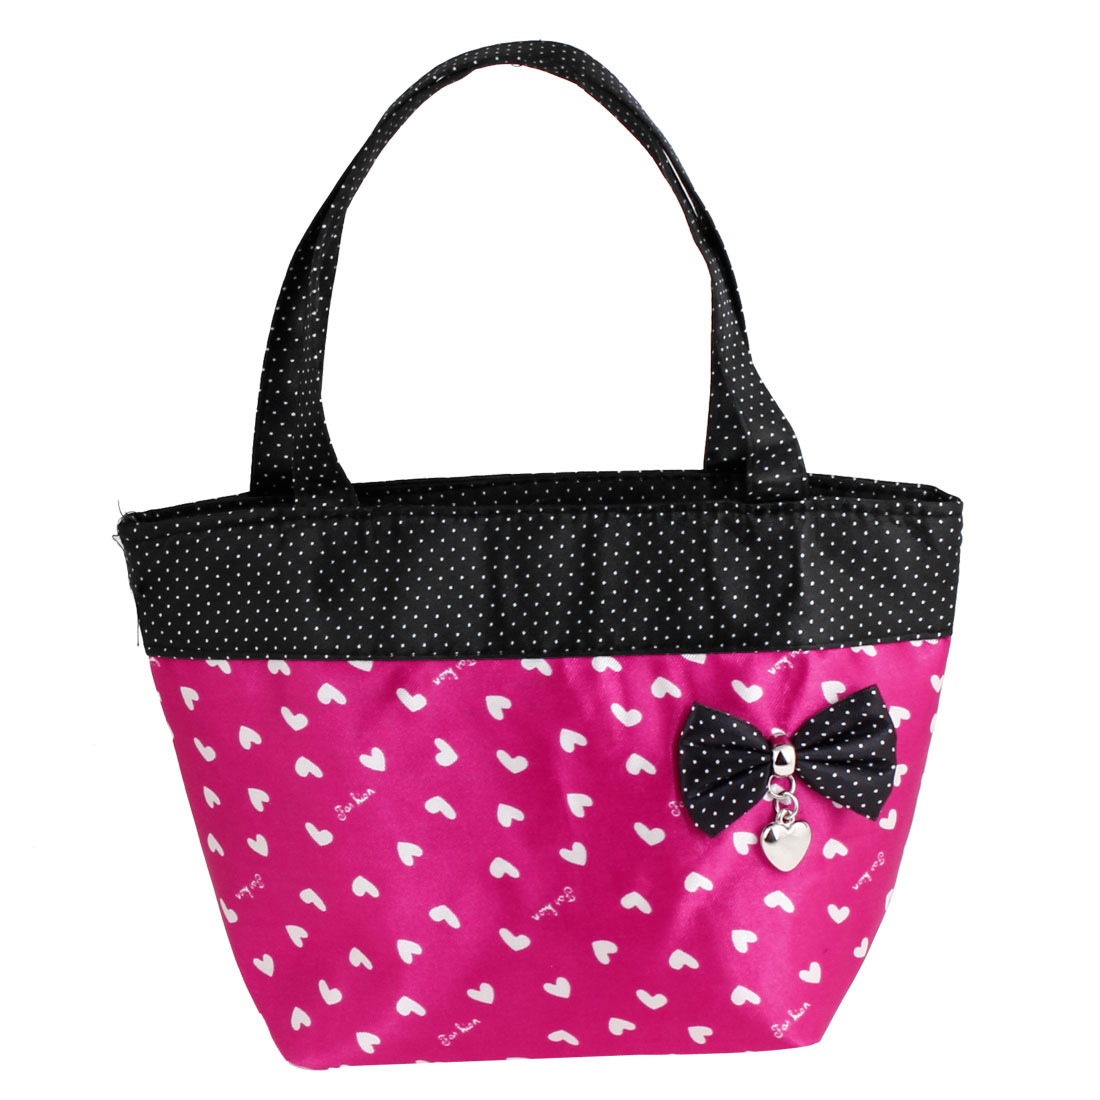 Fuchsia Black Portable Bag Bowknot Detail Zip up Polyester Shopping Handbag